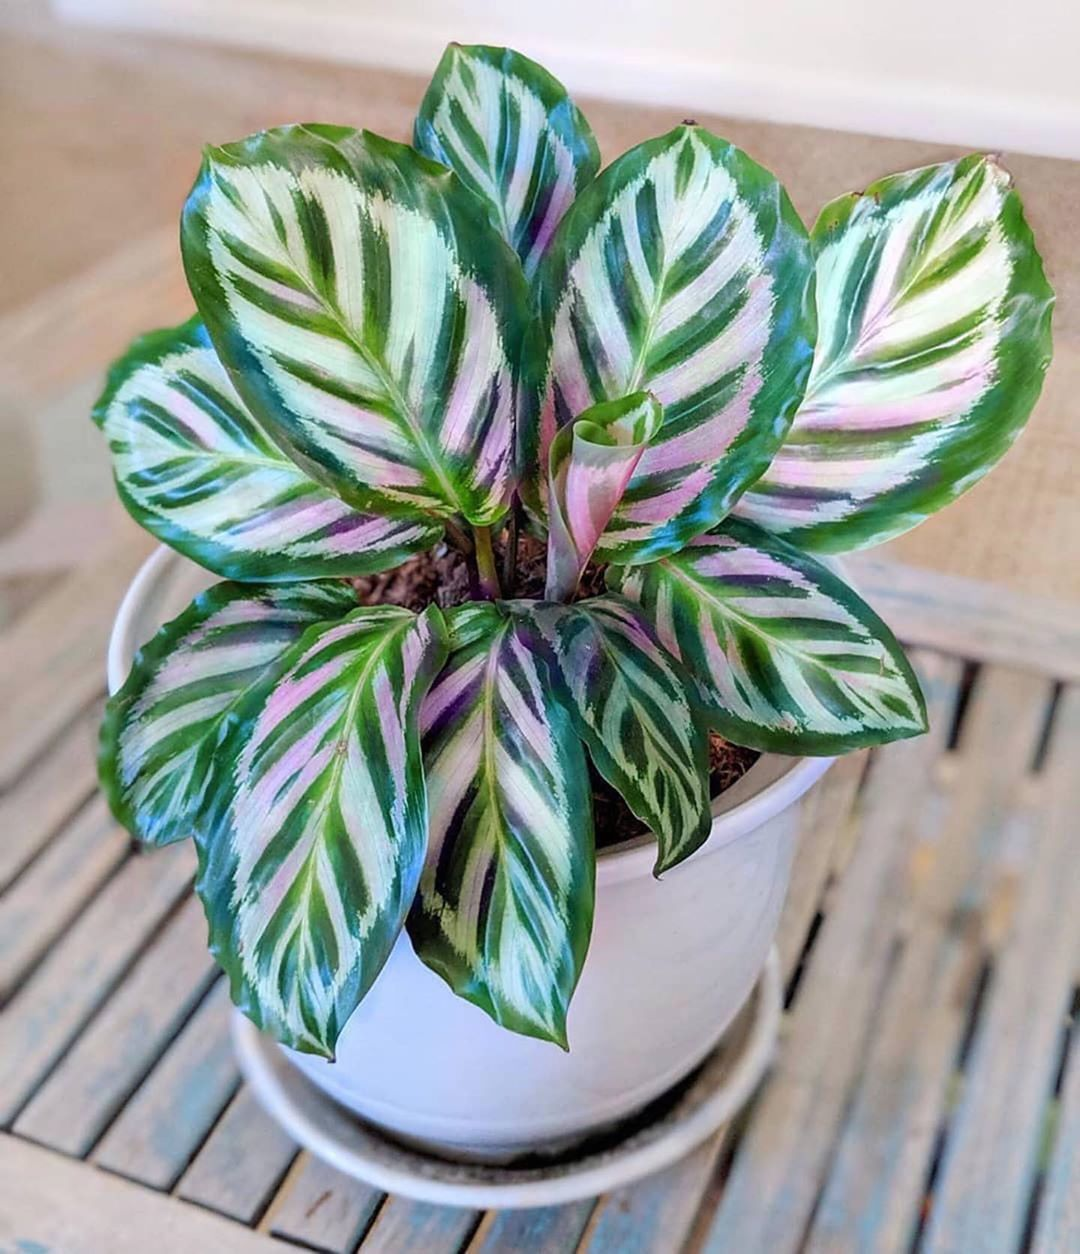 ZZ Botanical and Home on Instagram: When its ok to take beauty and styling advice from your plant   . Beauty specialist: Calathea Roseopicta Cora in store now!  Were